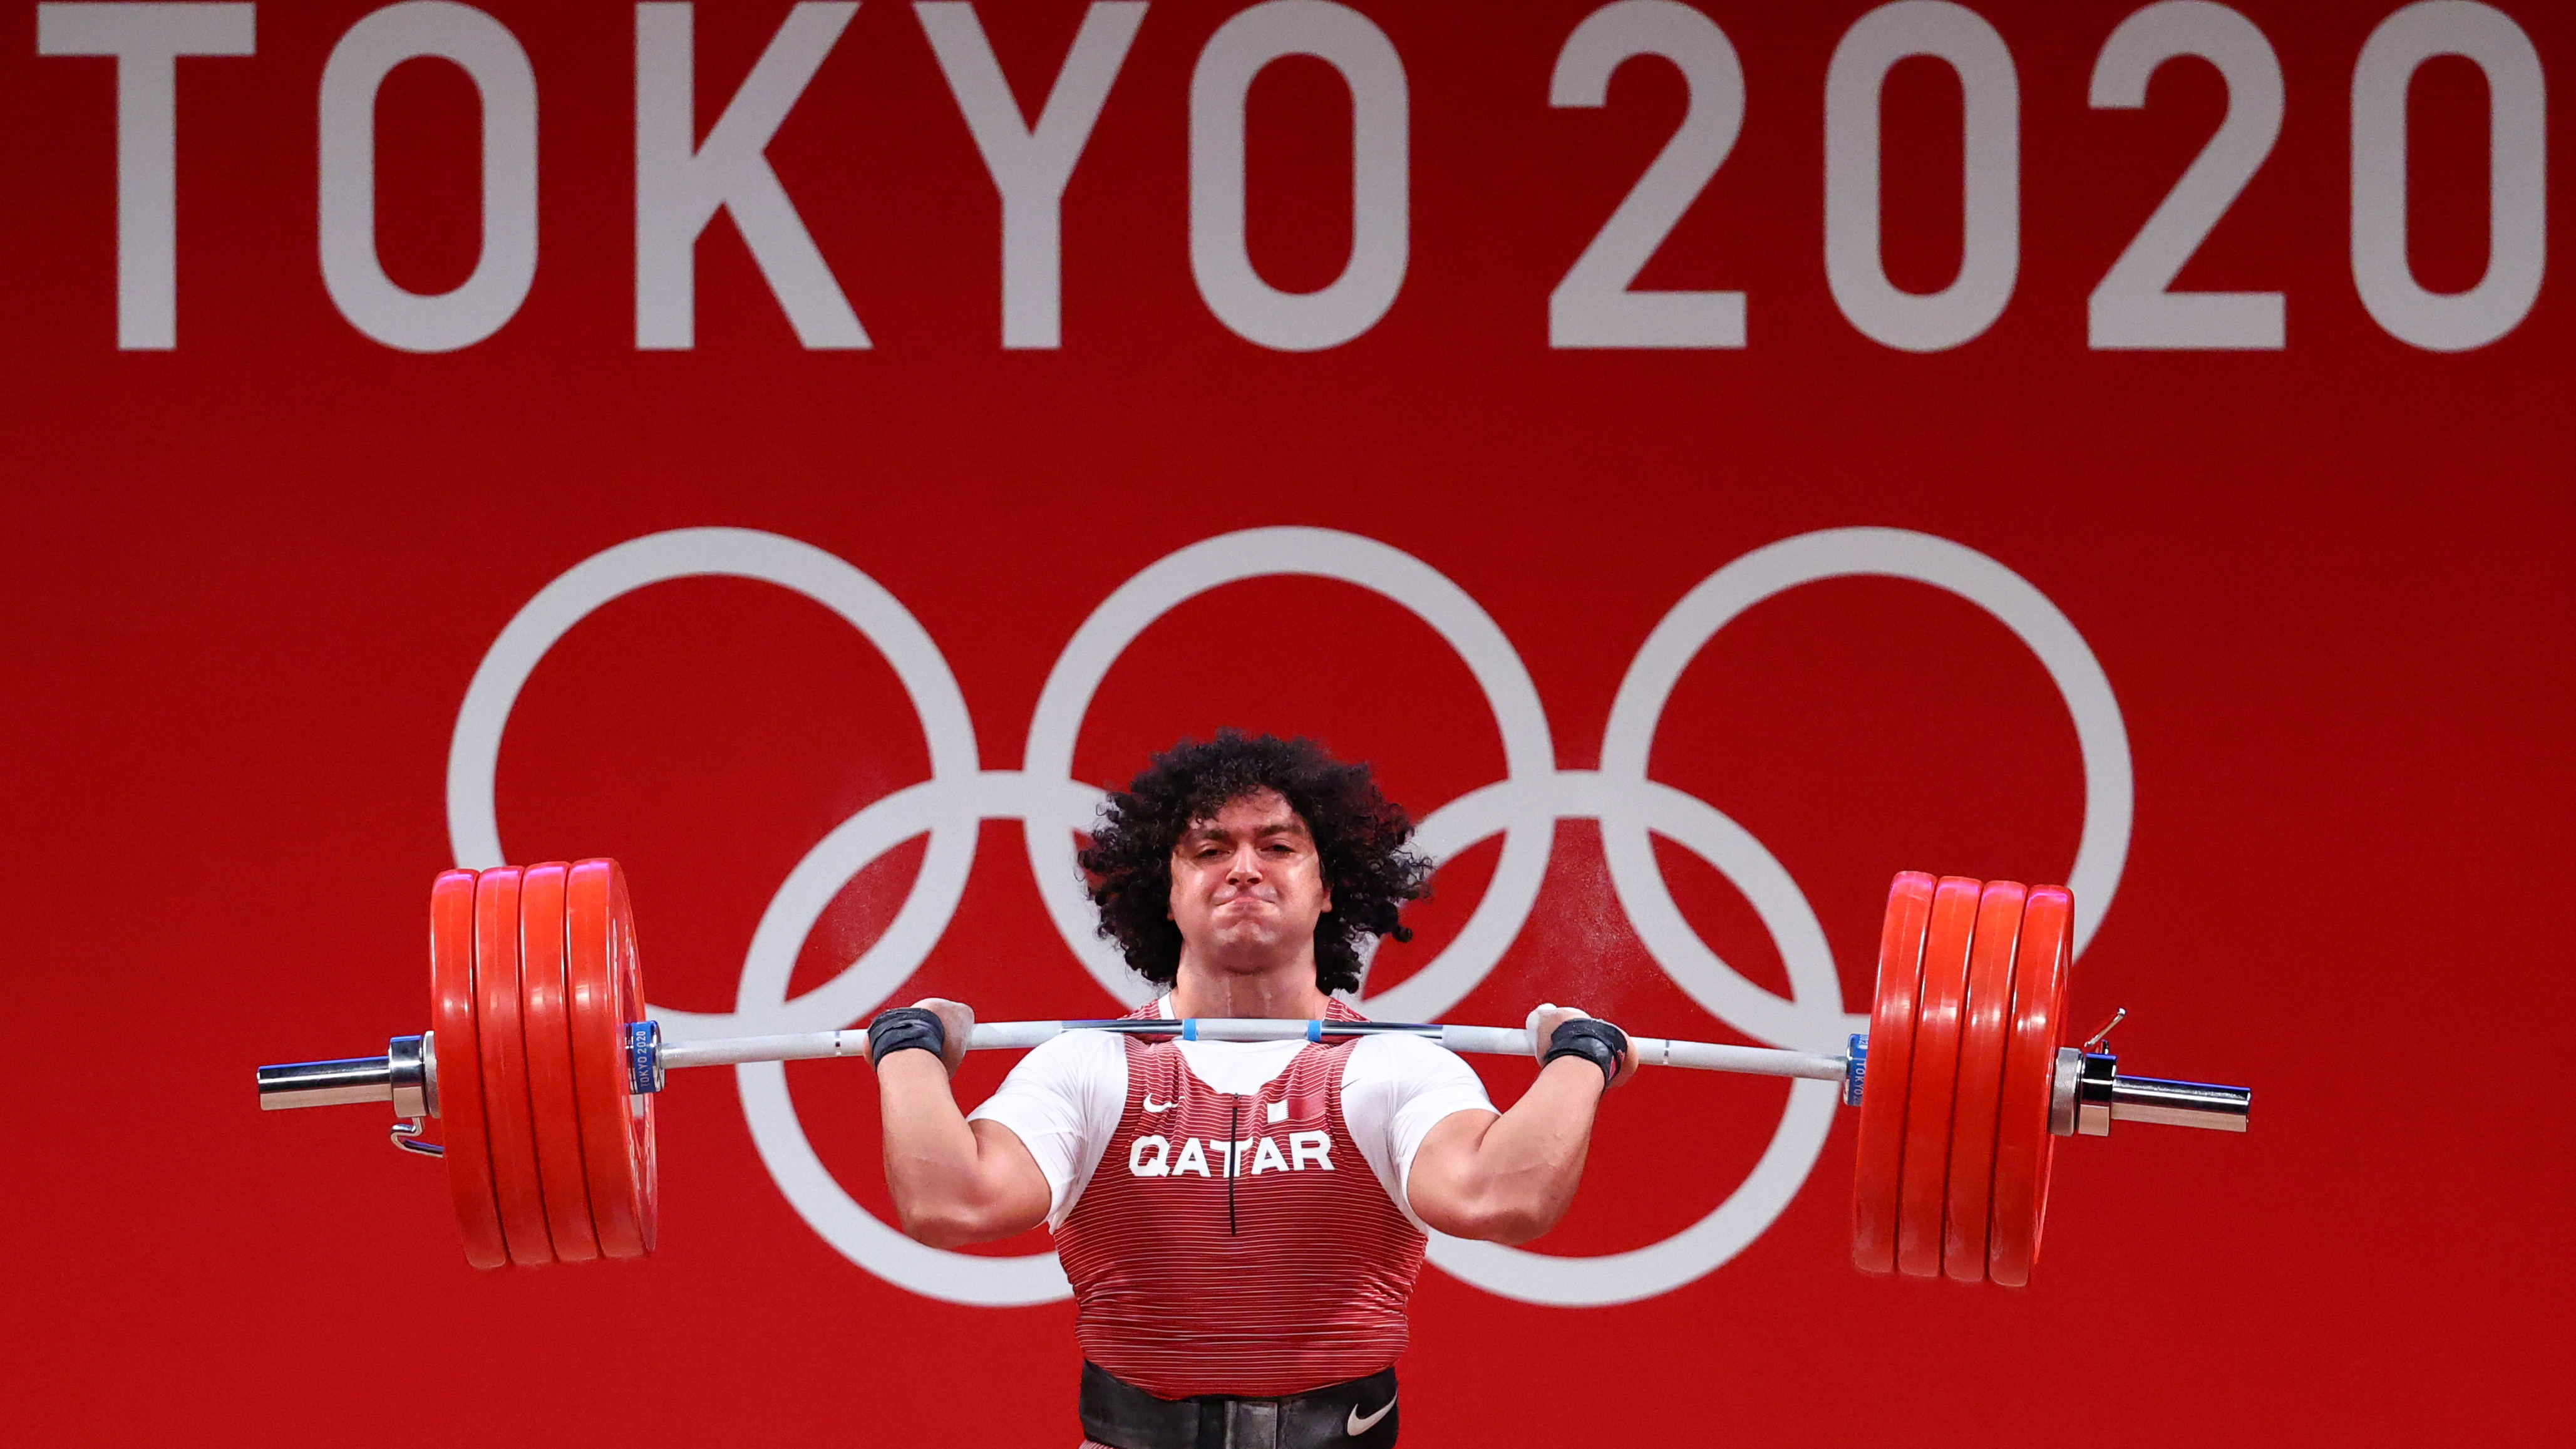 Weightlifter El-Bakh becomes Qatar's first Olympic champion, setting  records in the process - Infobae